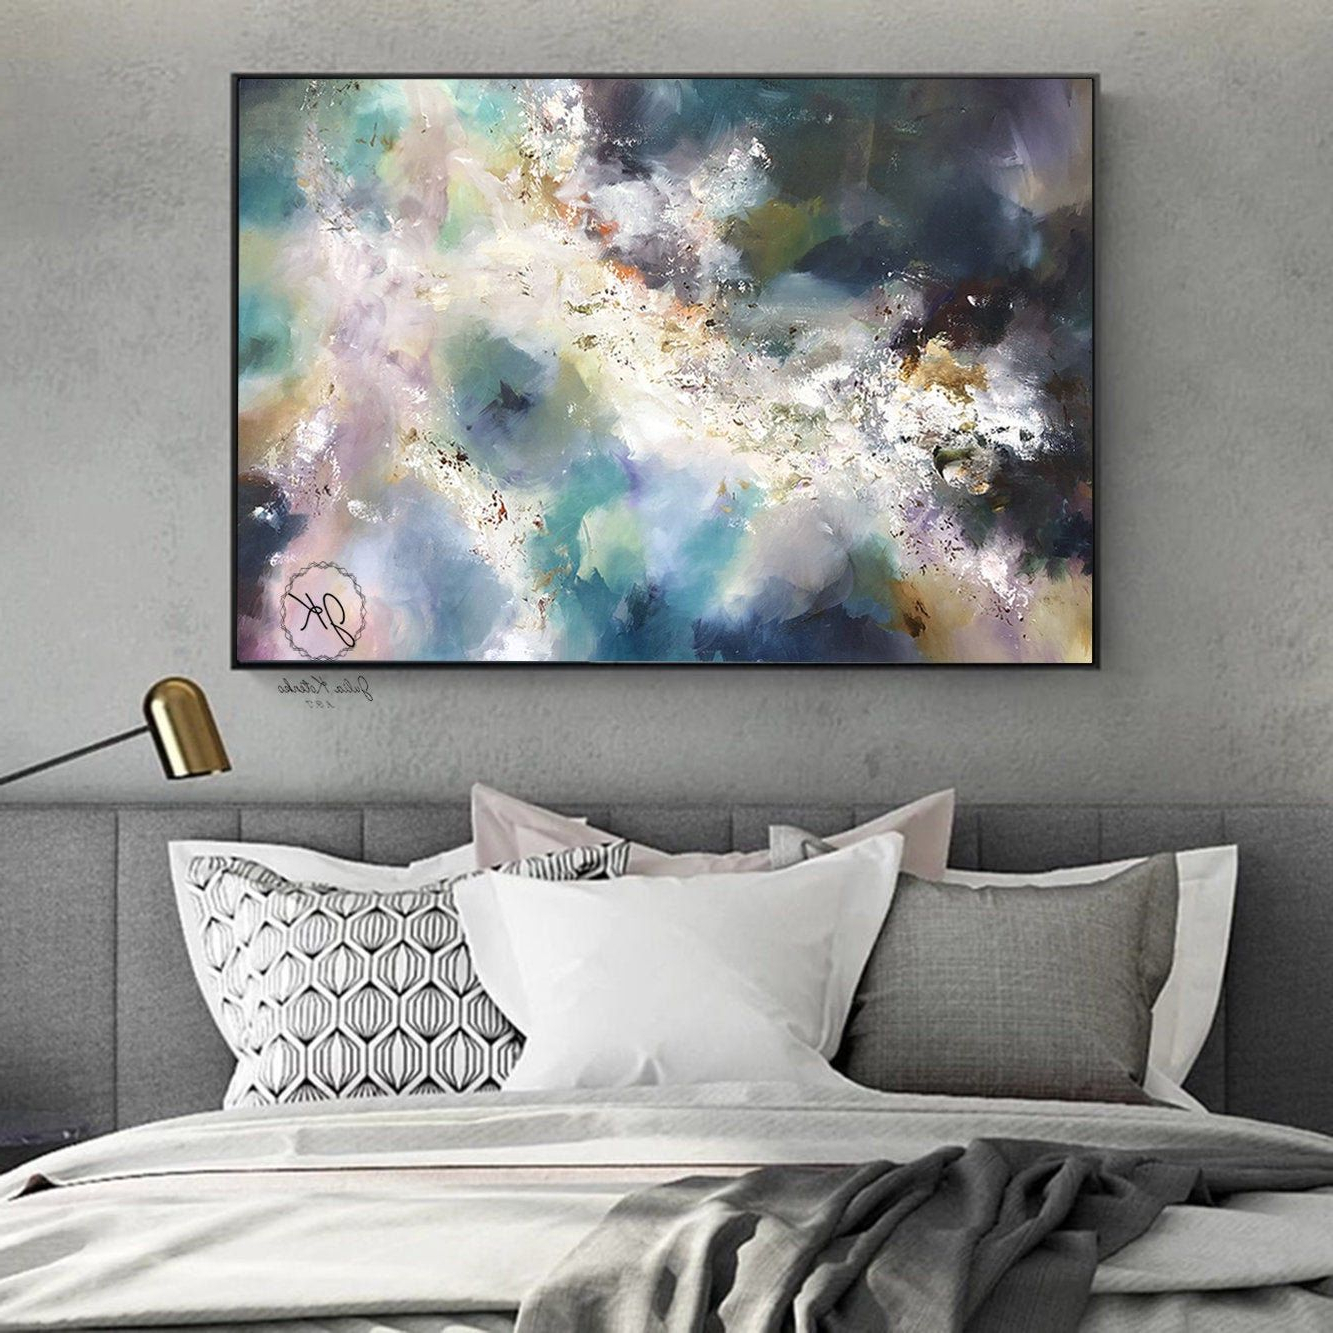 Best And Newest Large Wall Art Bedroom Above Bed Abstract Oil Painting Regarding Blended Fabric Italian Wall Hangings (View 17 of 20)